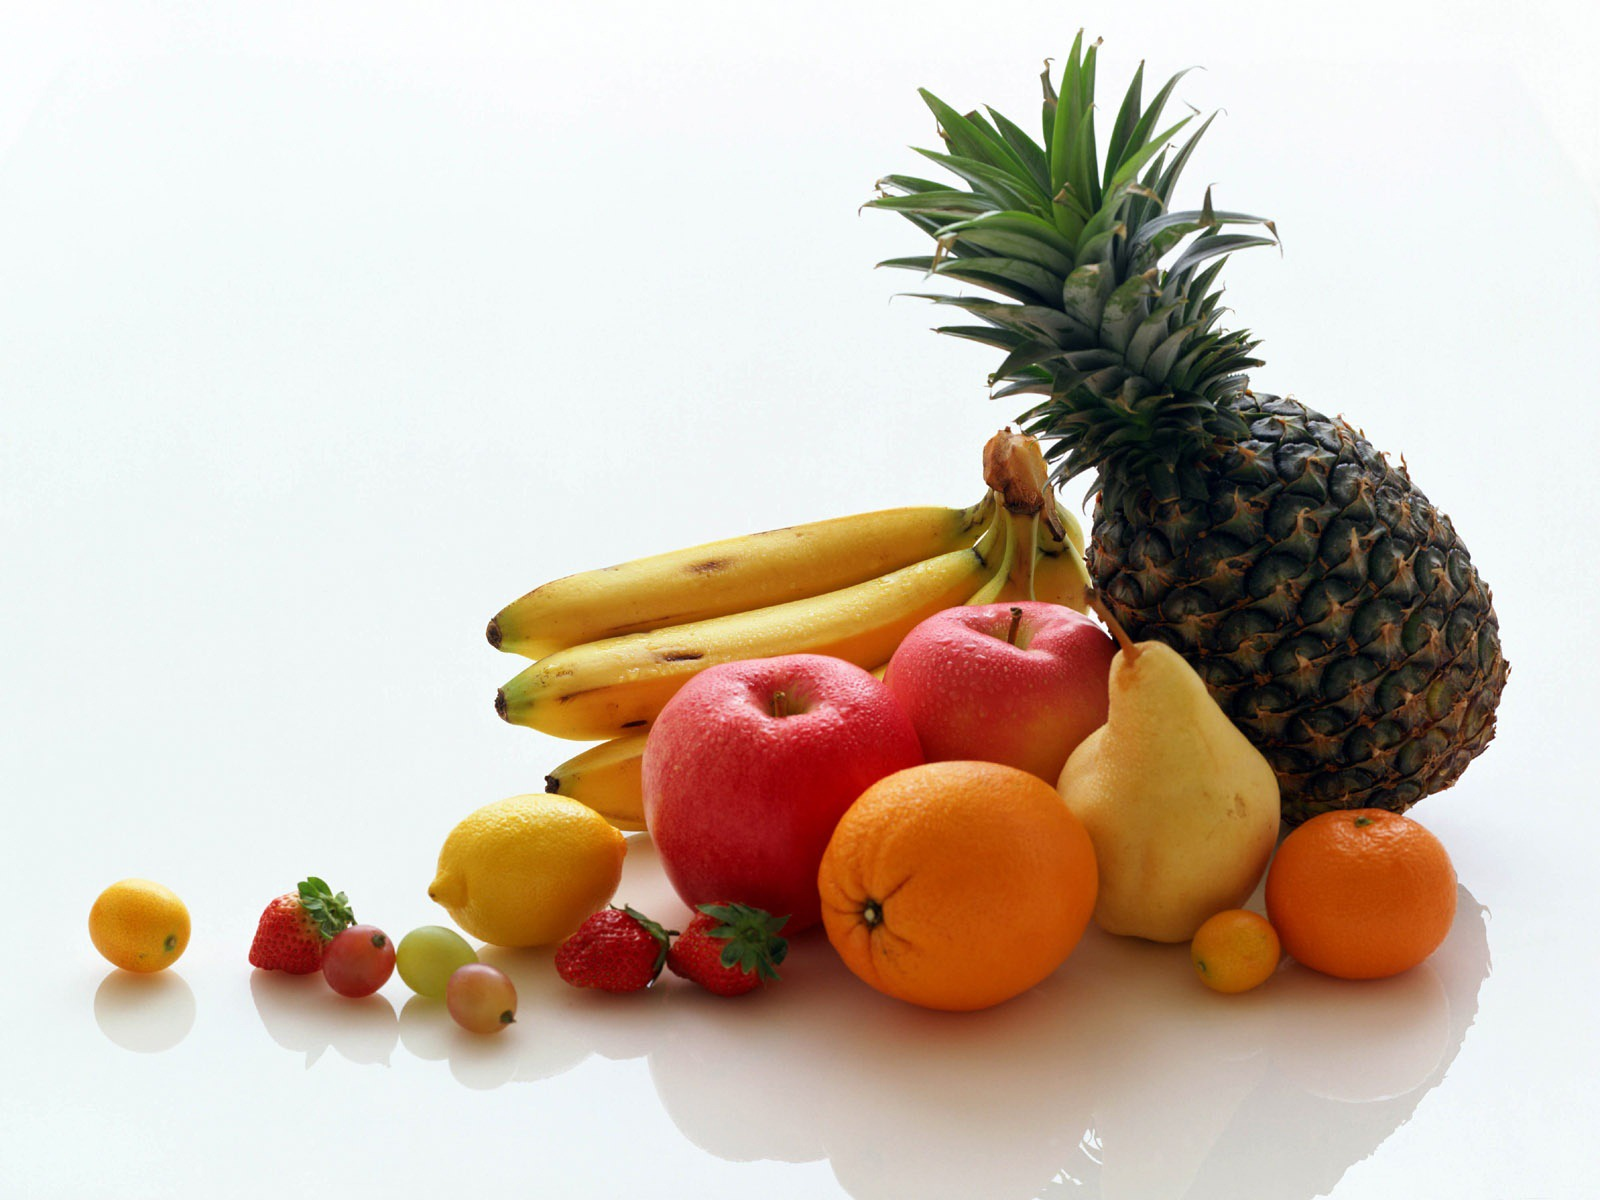 fresh fruits wallpaper fruits nature wallpaper 1600 1200 1345jpg 1600x1200